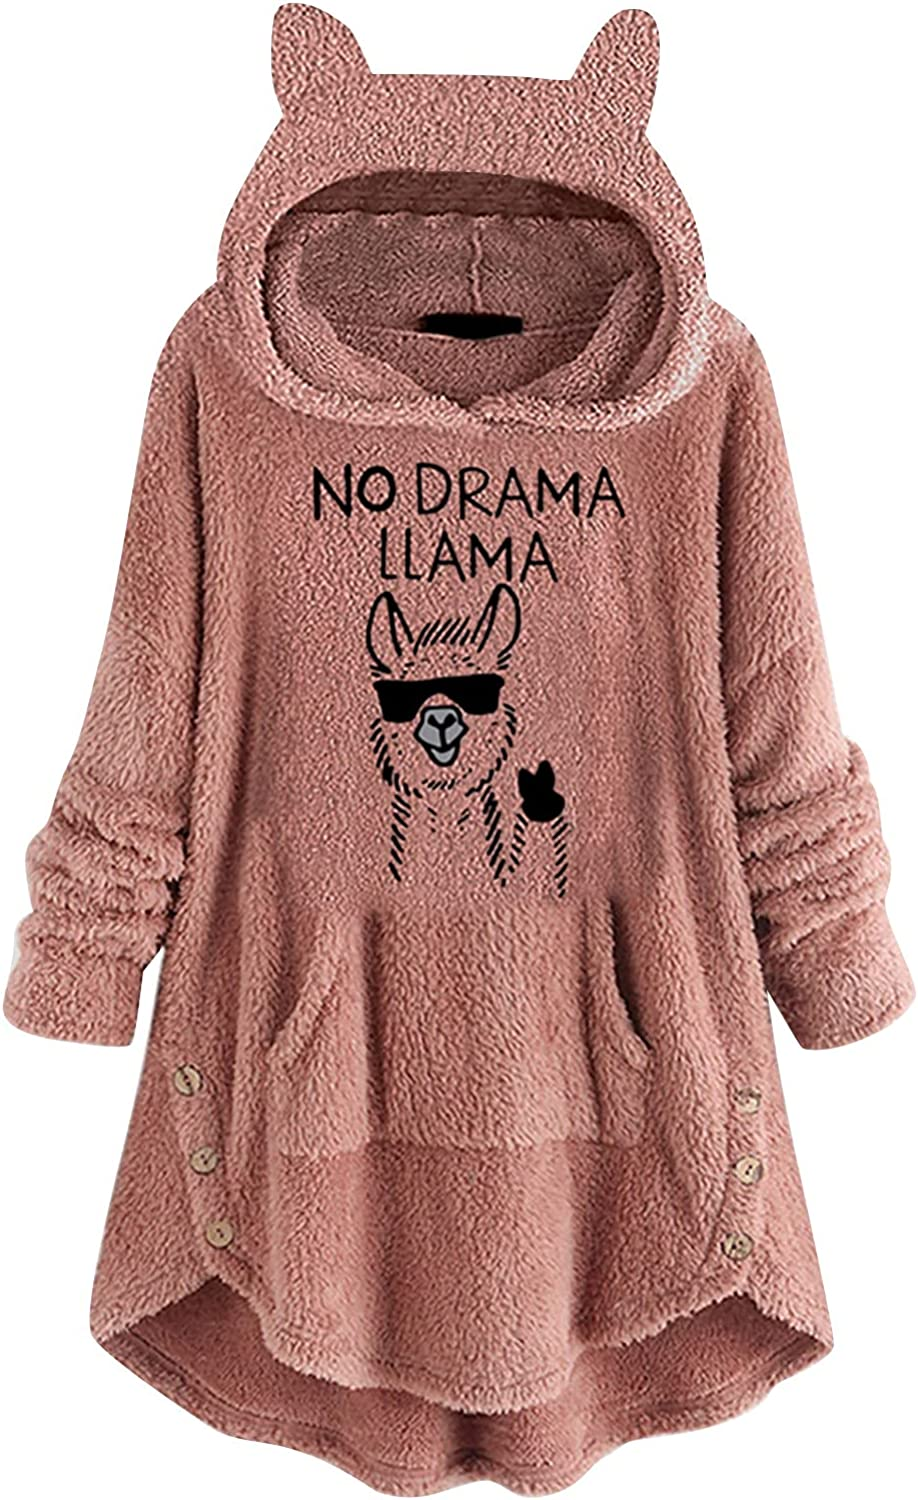 Oversized Pullover Cute Jackets Sweaters Limited price Hoodies Don't miss the campaign W Women Vintage